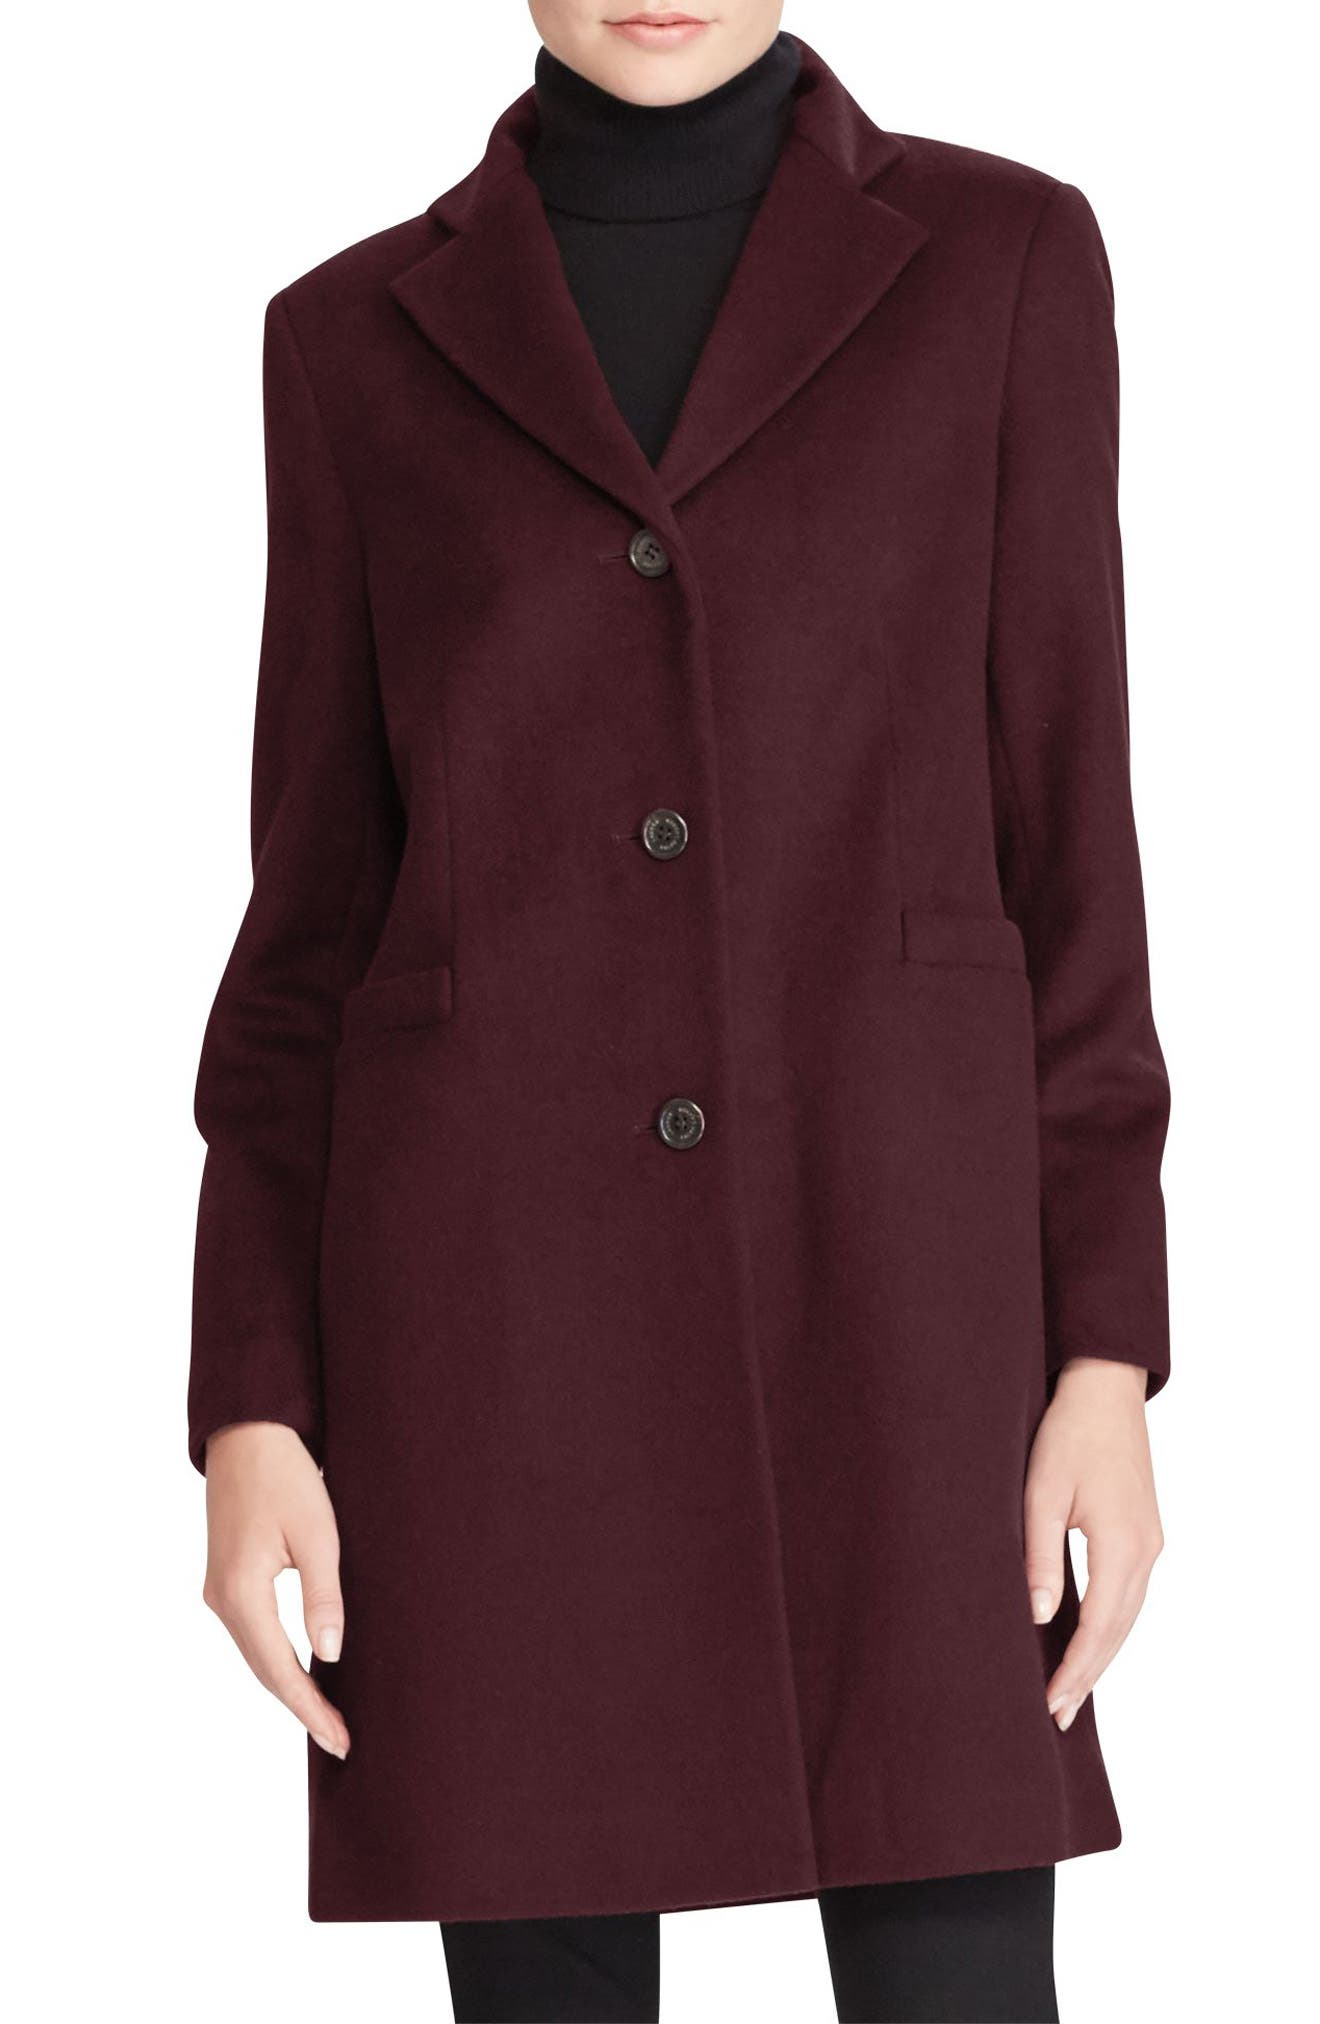 Main Image - Lauren Ralph Lauren Wool Blend Reefer Coat (Regular & Petite)